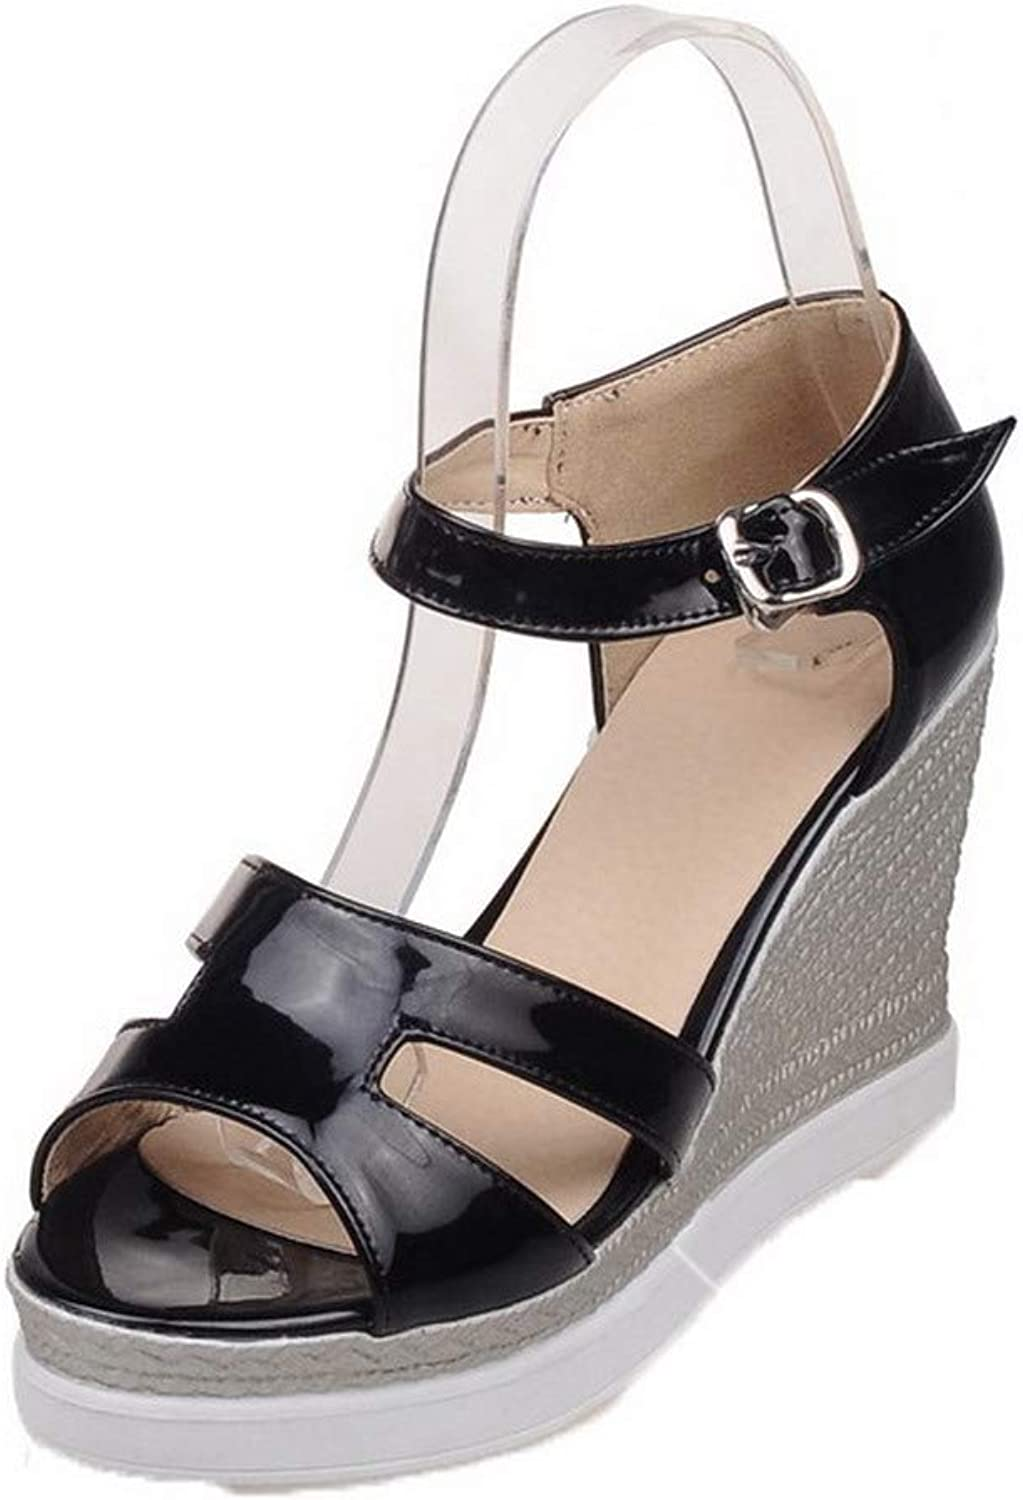 AllhqFashion Women's Open-Toe Buckle Patent Leather Solid High-Heels Sandals, FBULD014991